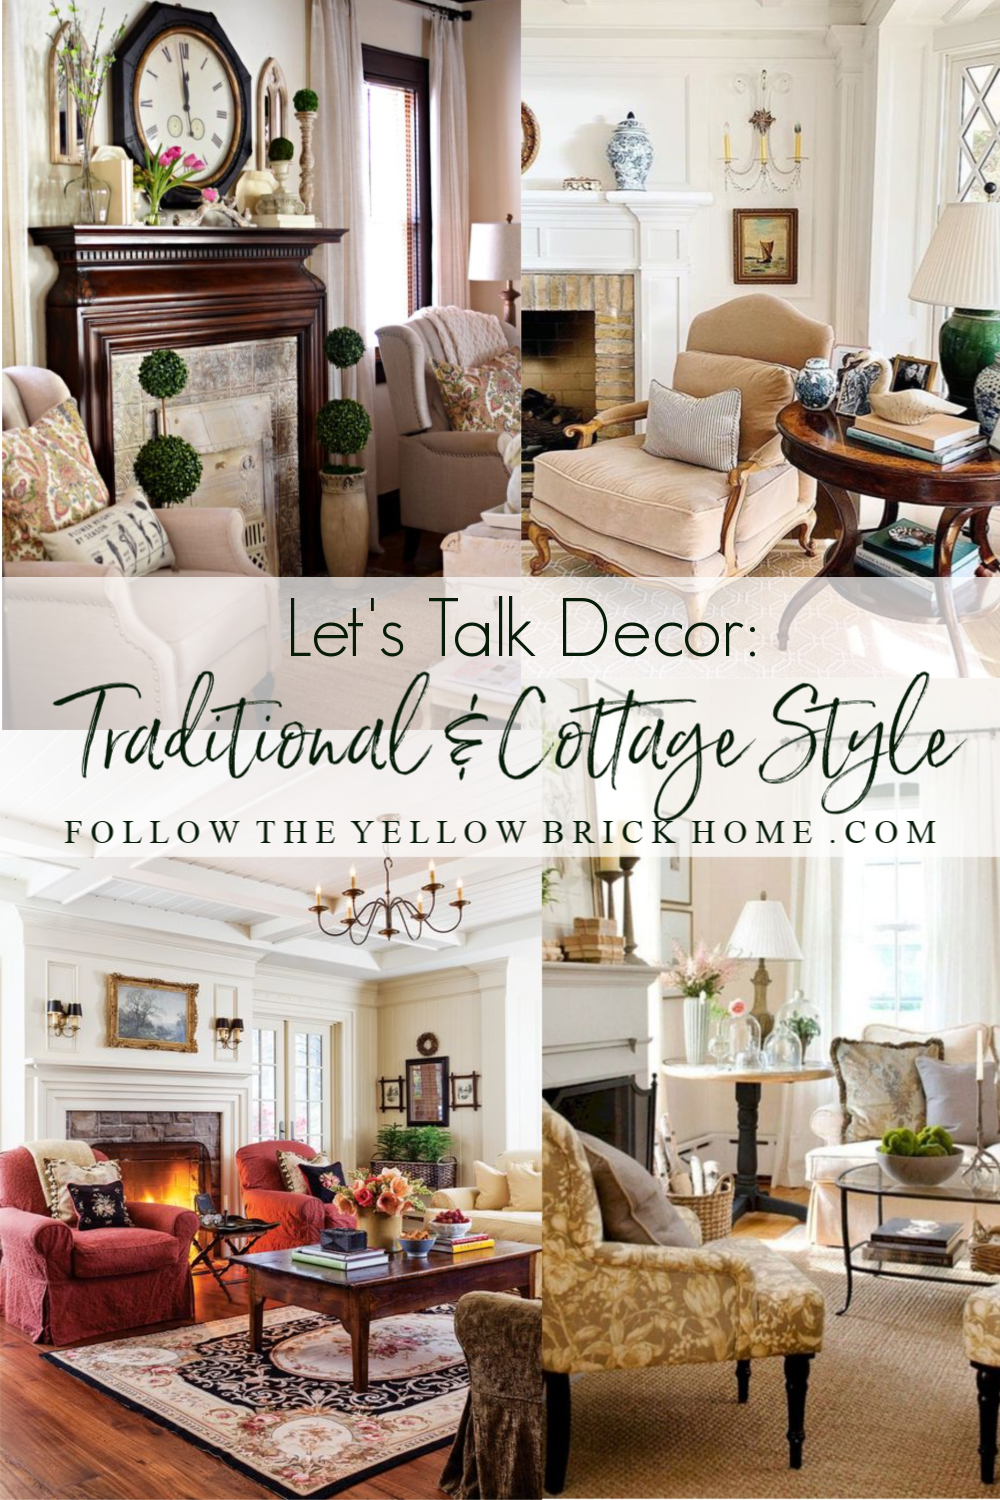 Traditional cottage style decor cottage decorating ideas southern style decor